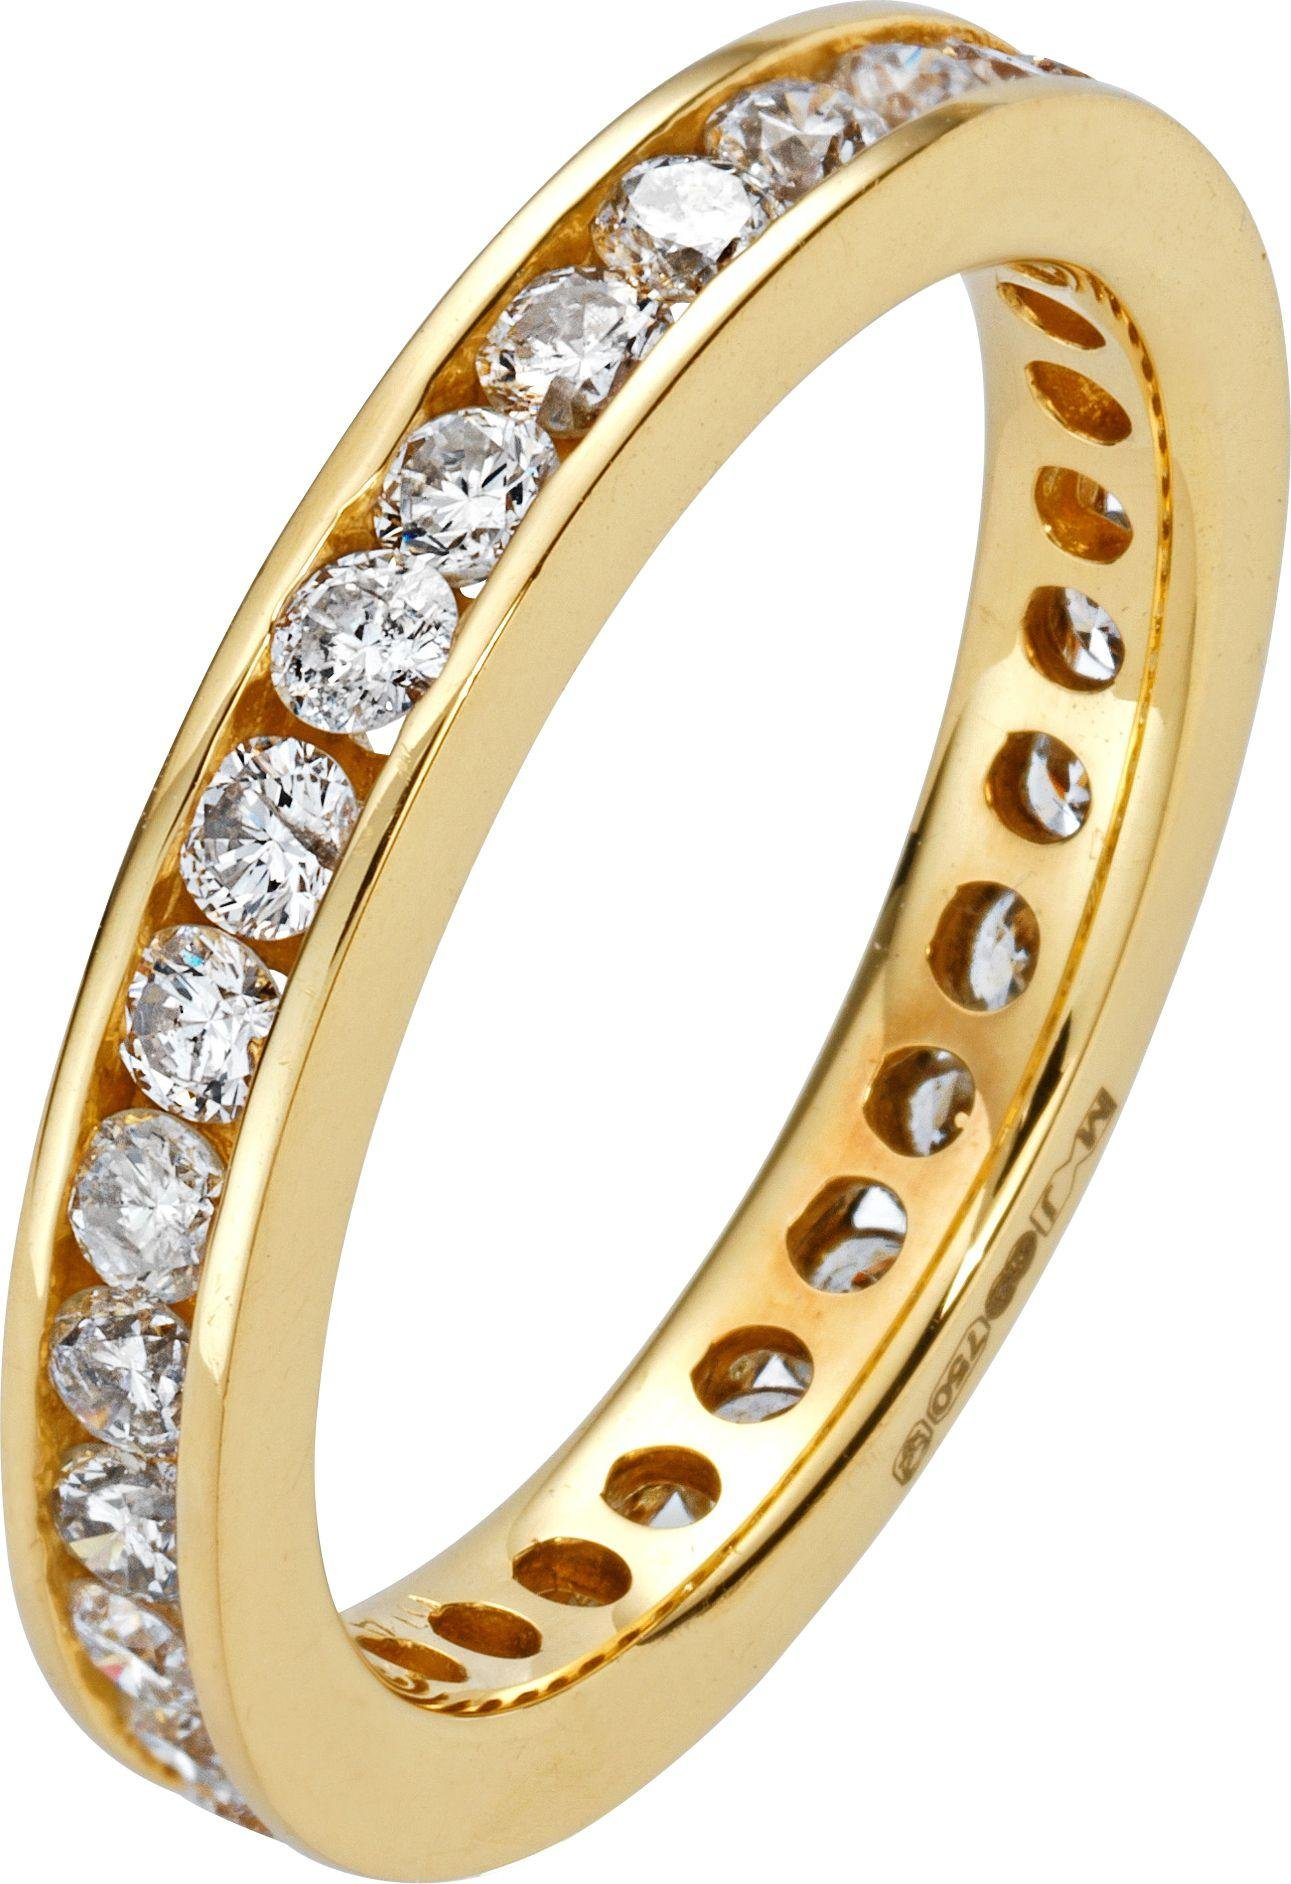 Made For You - 18 Carat Gold - 1 Carat Diamond - Eternity Ring - Size M